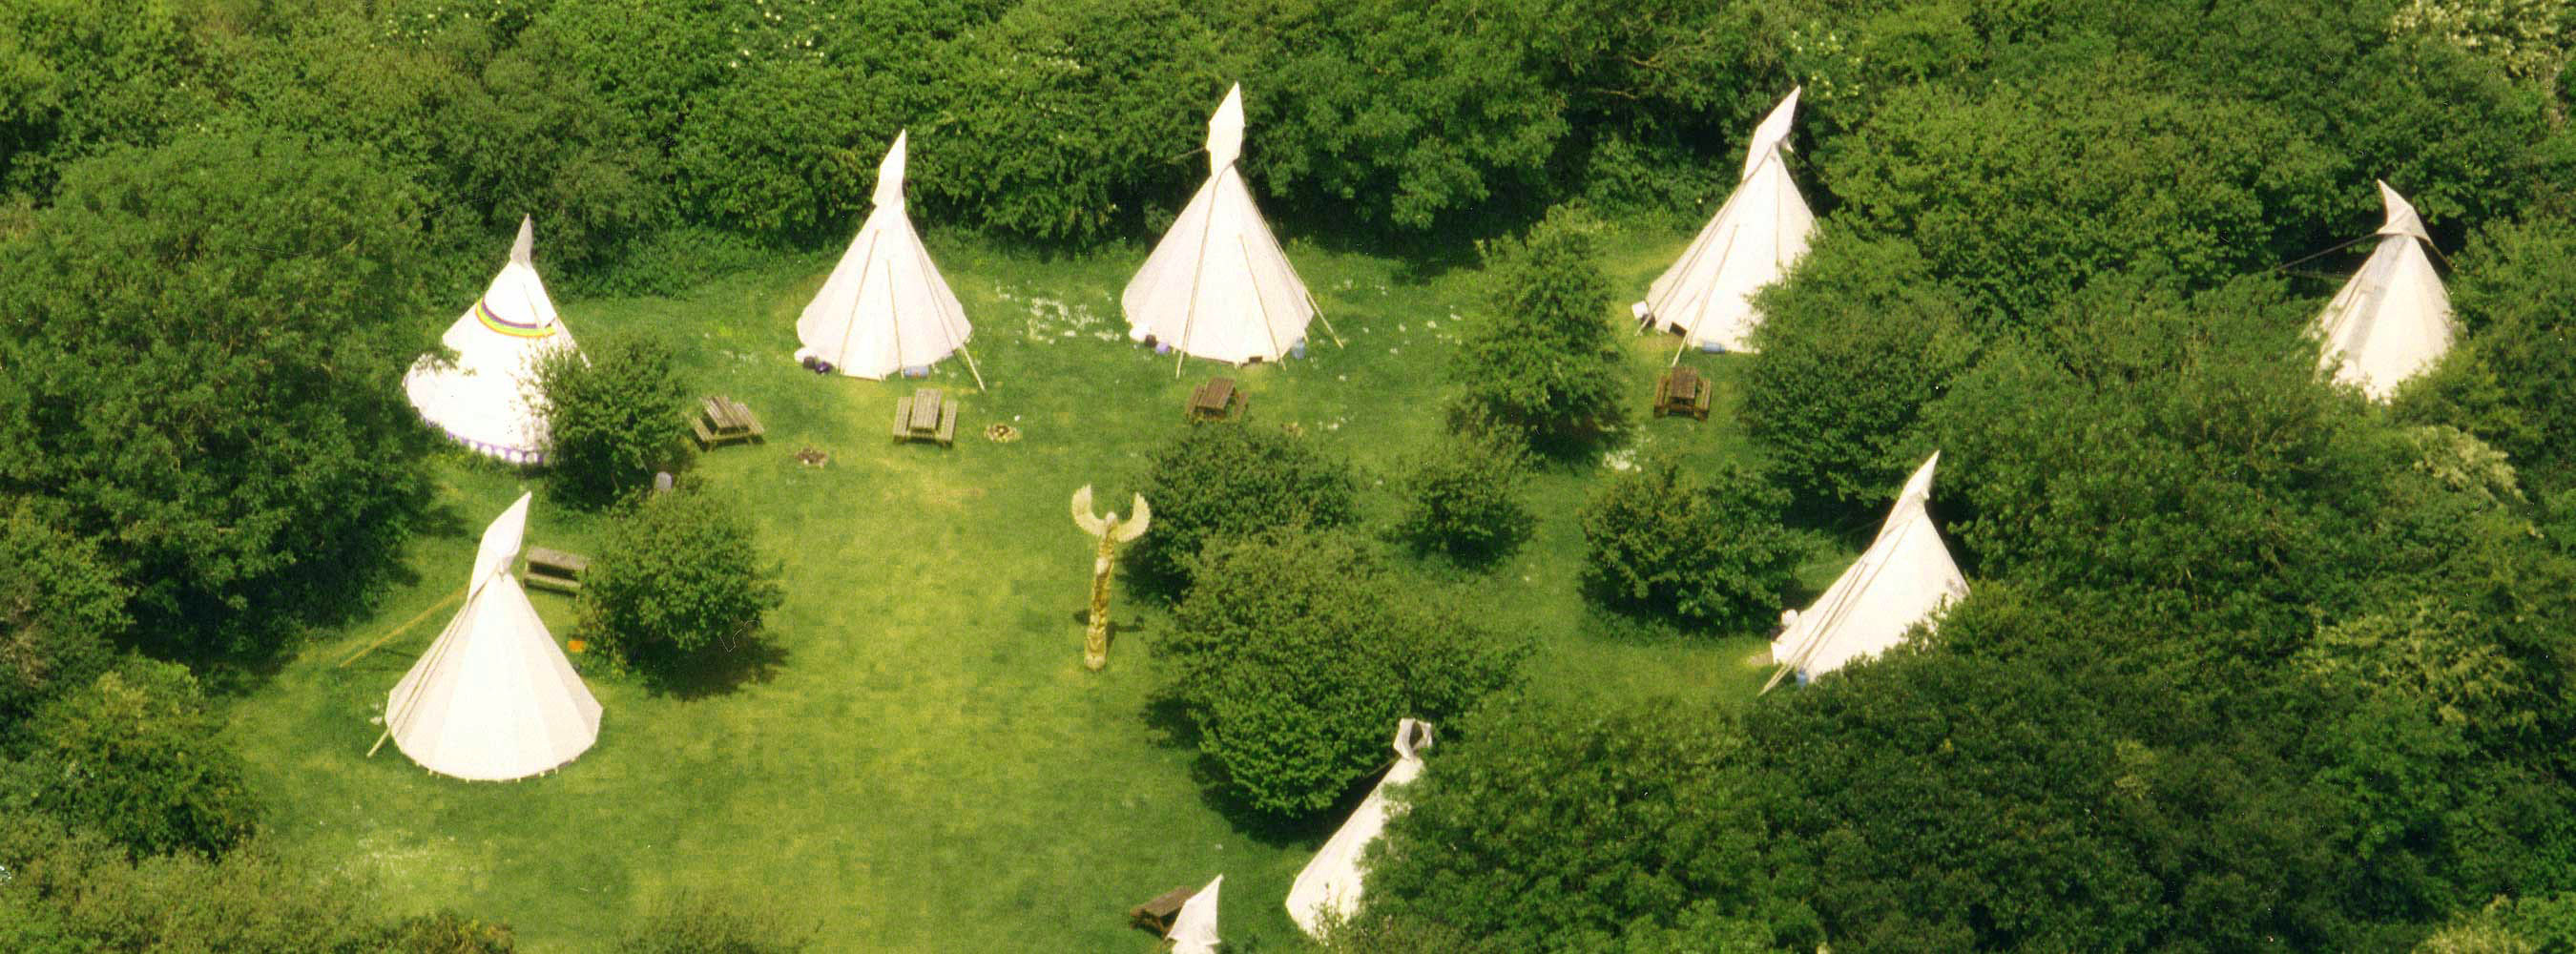 Guests can stay in one of our equipped tipis